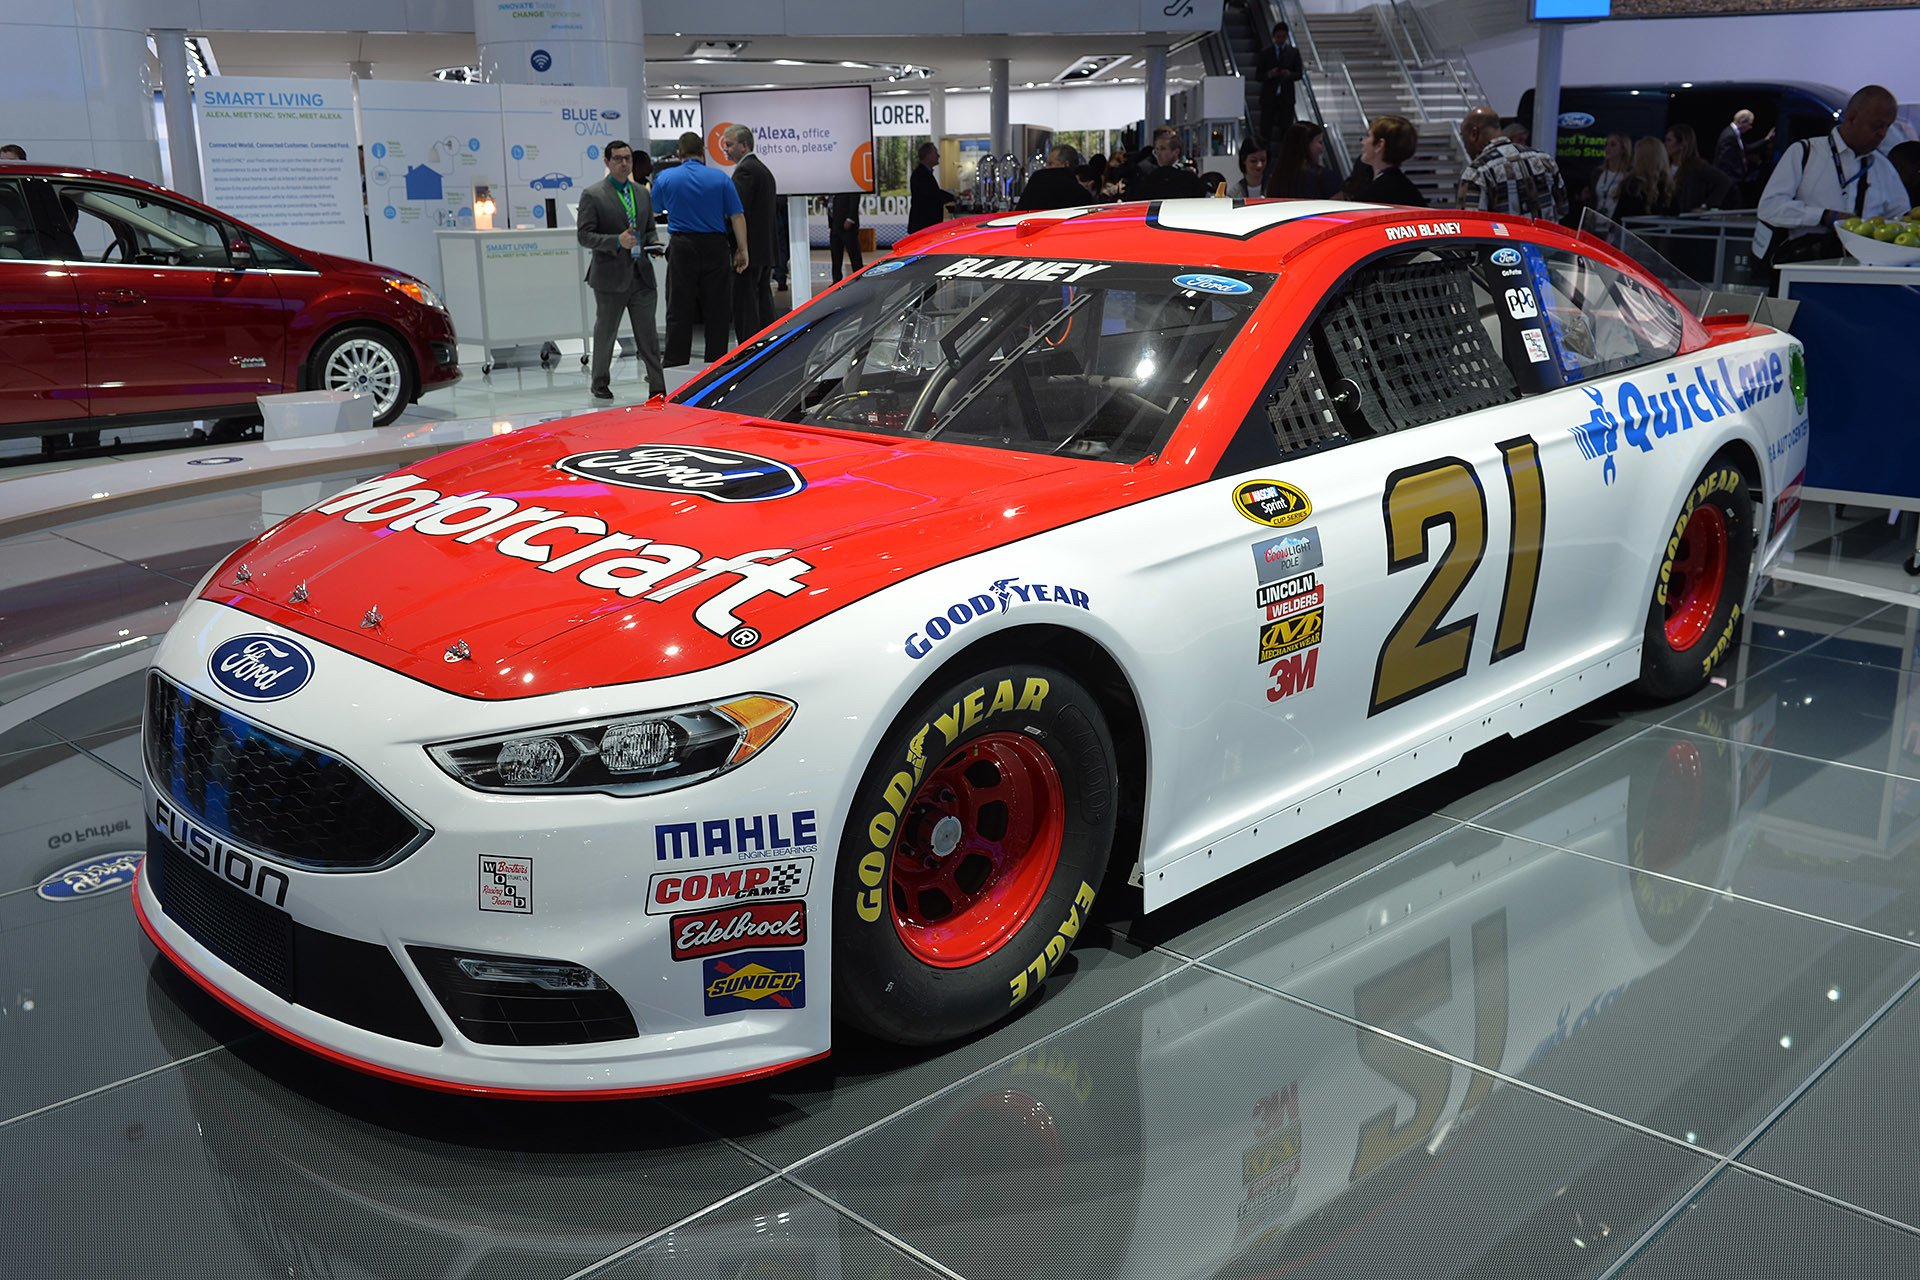 Ford Fusion Nascar Race Cars Wallpaper